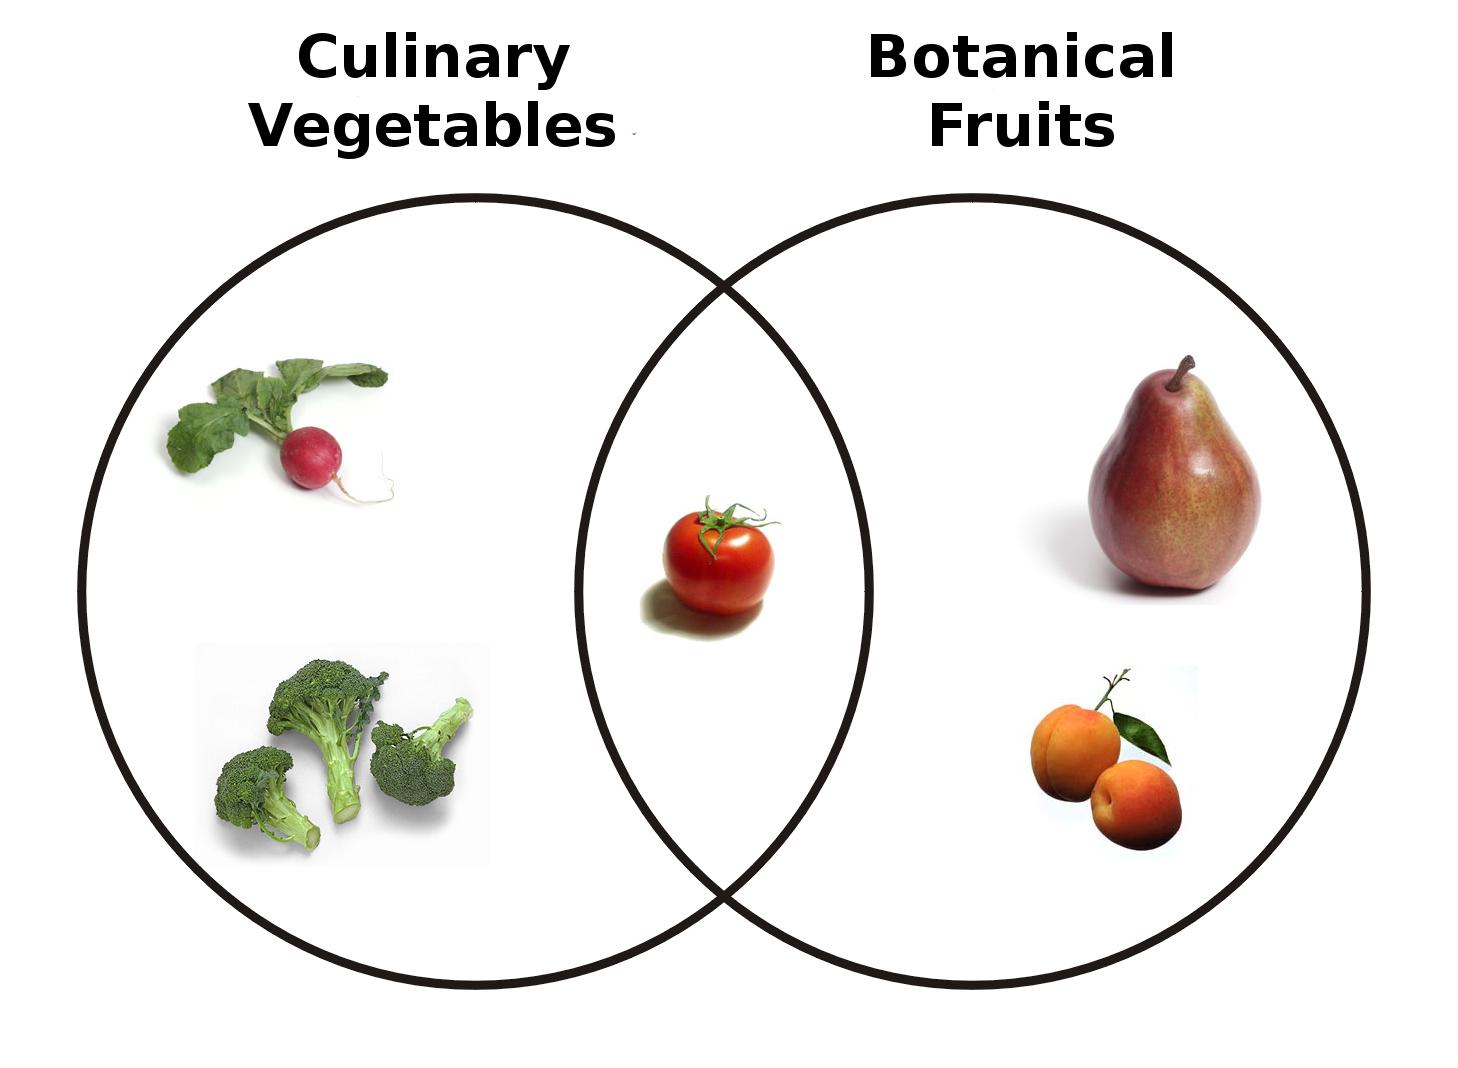 https://upload.wikimedia.org/wikipedia/commons/a/a7/Botanical_Fruit_and_Culinary_Vegetables.png